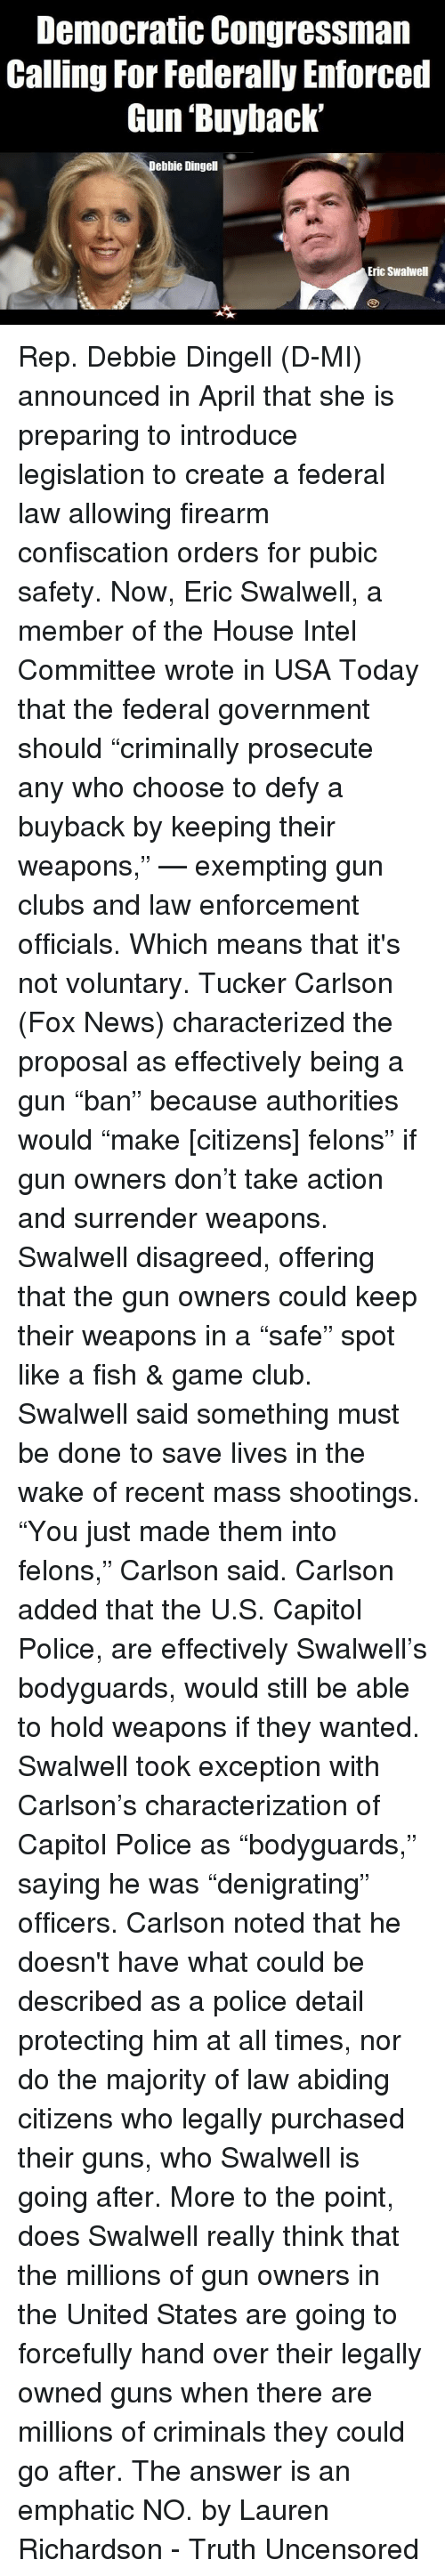 """Club, Guns, and Memes: Democratic Congressman  Calling For Federally Enforced  Gun Buyback'  ebbie Dingell  Eric Swalwell Rep. Debbie Dingell (D-MI) announced in April that she is preparing to introduce legislation to create a federal law allowing firearm confiscation orders for pubic safety.  Now, Eric Swalwell, a member of the House Intel Committee wrote in USA Today that the federal government should """"criminally prosecute any who choose to defy a buyback by keeping their weapons,"""" — exempting gun clubs and law enforcement officials. Which means that it's not voluntary.   Tucker Carlson (Fox News) characterized the proposal as effectively being a gun """"ban"""" because authorities would """"make [citizens] felons"""" if gun owners don't take action and surrender weapons.  Swalwell disagreed, offering that the gun owners could keep their weapons in a """"safe"""" spot like a fish & game club.  Swalwell said something must be done to save lives in the wake of recent mass shootings.  """"You just made them into felons,"""" Carlson said.   Carlson added that the U.S. Capitol Police, are effectively Swalwell's bodyguards, would still be able to hold weapons if they wanted.  Swalwell took exception with Carlson's characterization of Capitol Police as """"bodyguards,"""" saying he was """"denigrating"""" officers.  Carlson noted that he doesn't have what could be described as a police detail protecting him at all times, nor do the majority of law abiding citizens who legally purchased their guns, who Swalwell is going after.  More to the point, does Swalwell really think that the millions of gun owners in the United States are going to forcefully hand over their legally owned guns when there are millions of criminals they could go after. The answer is an emphatic NO.  by Lauren Richardson - Truth Uncensored"""